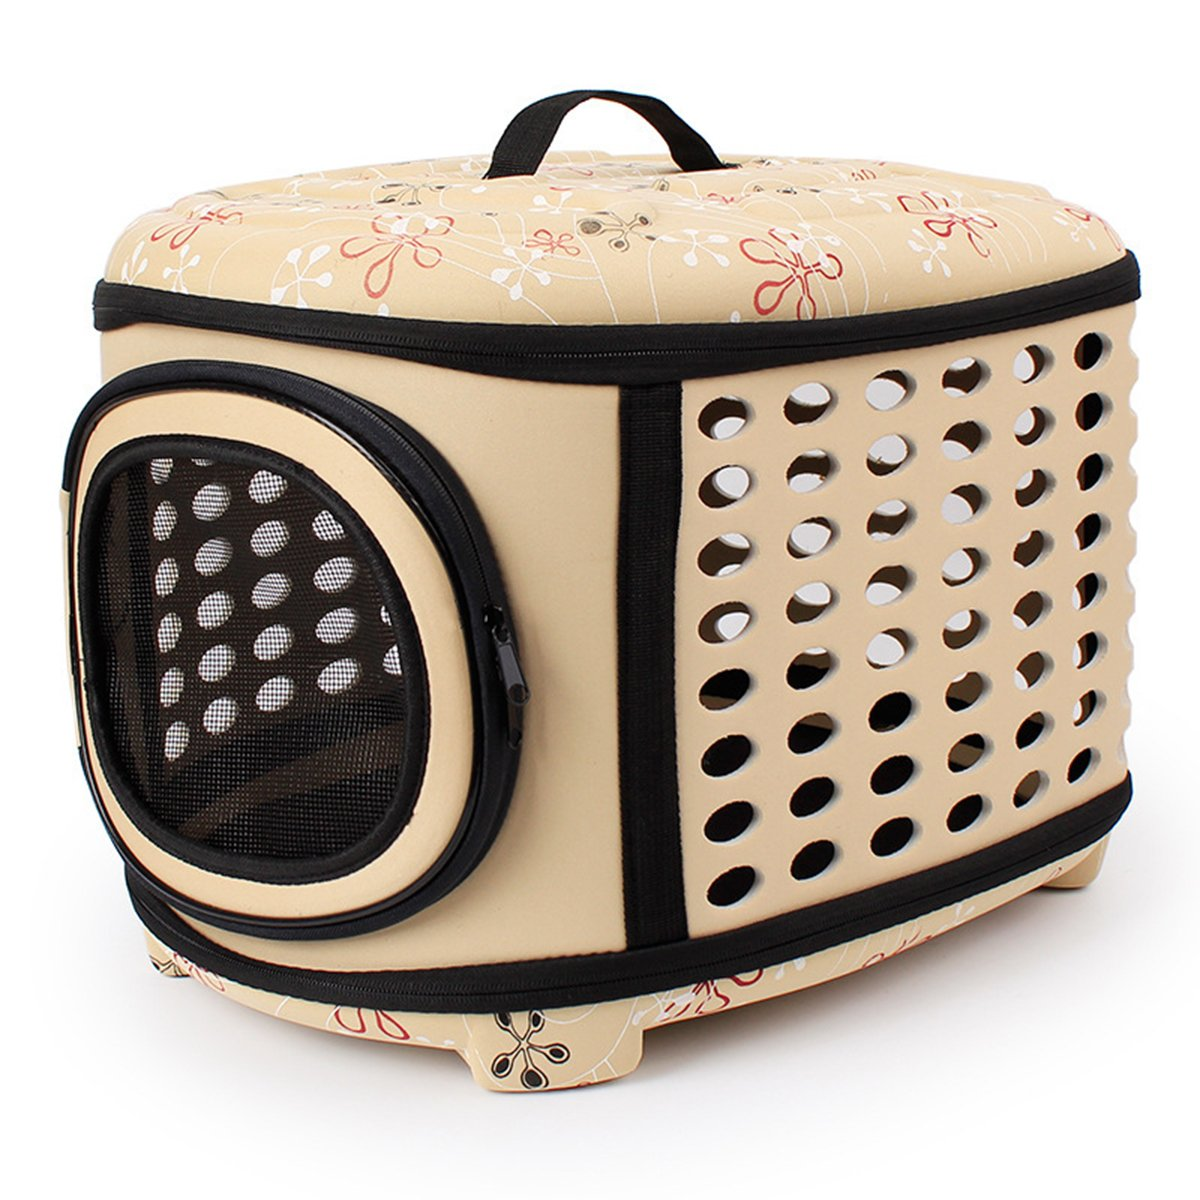 QZBAOSHU Cat Carrier Travel Kennel for Cats, Small Dogs Puppies & Rabbits 18LX14WX12H (Yellow) by QZBAOSHU